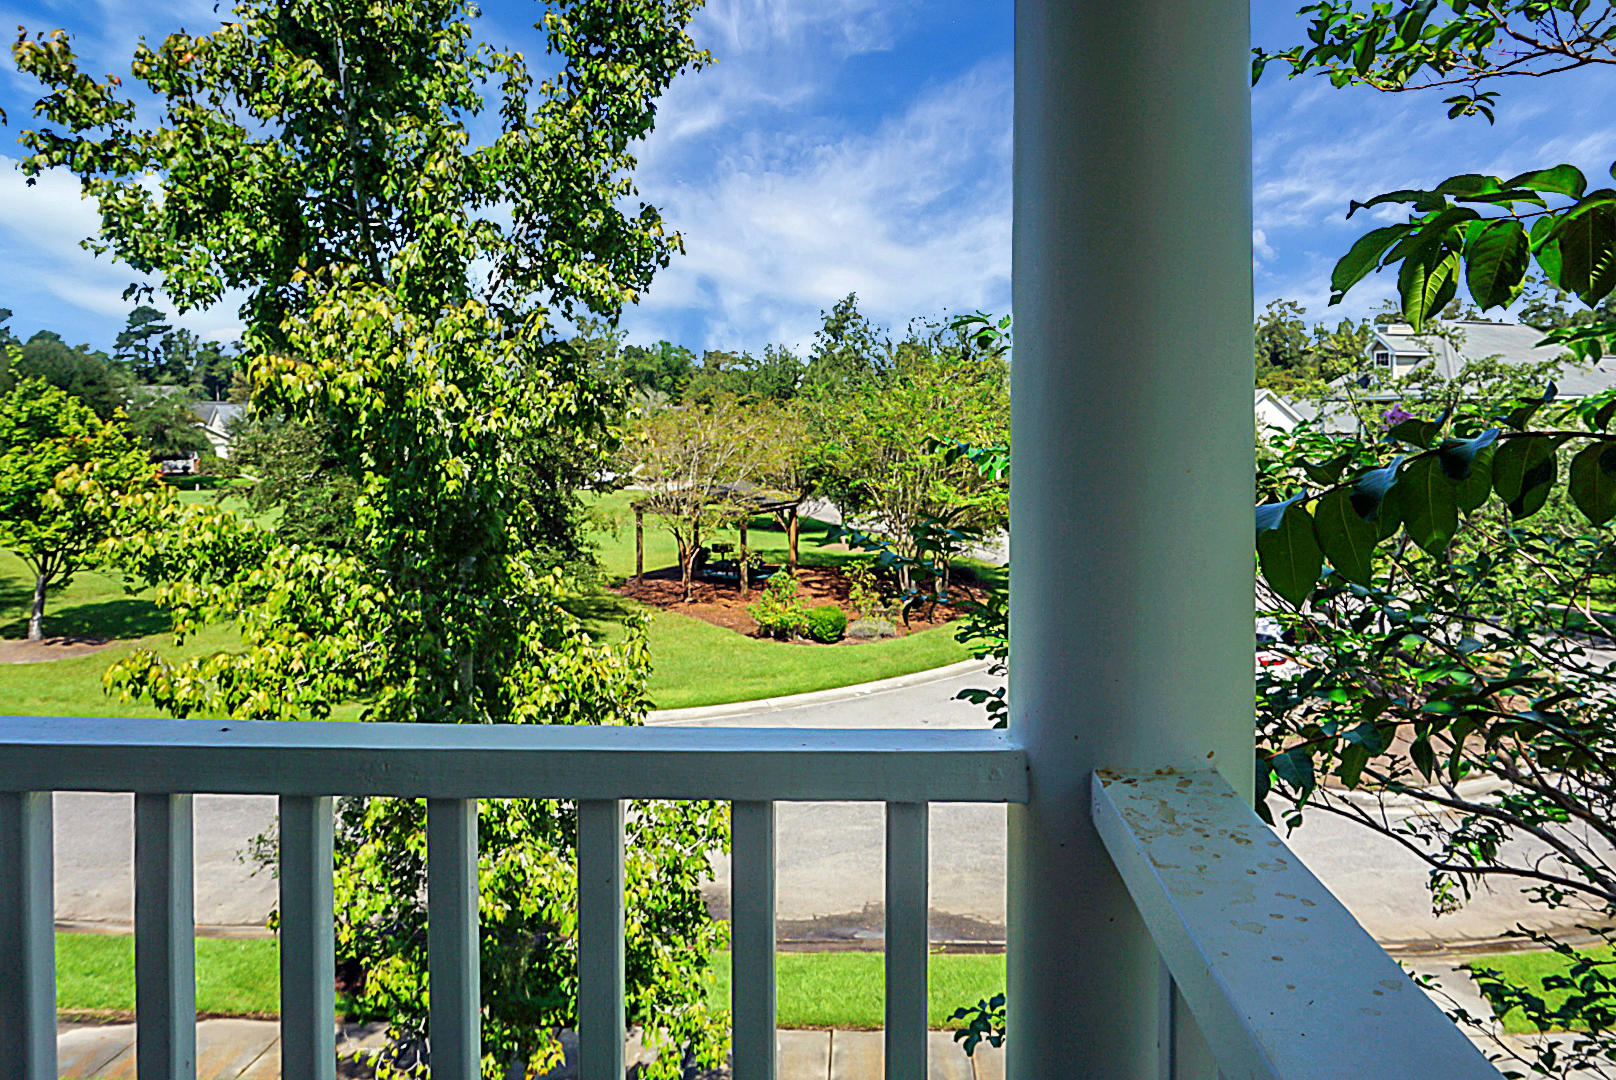 Heatherwoods Homes For Sale - 120 Full Moon, Ladson, SC - 2